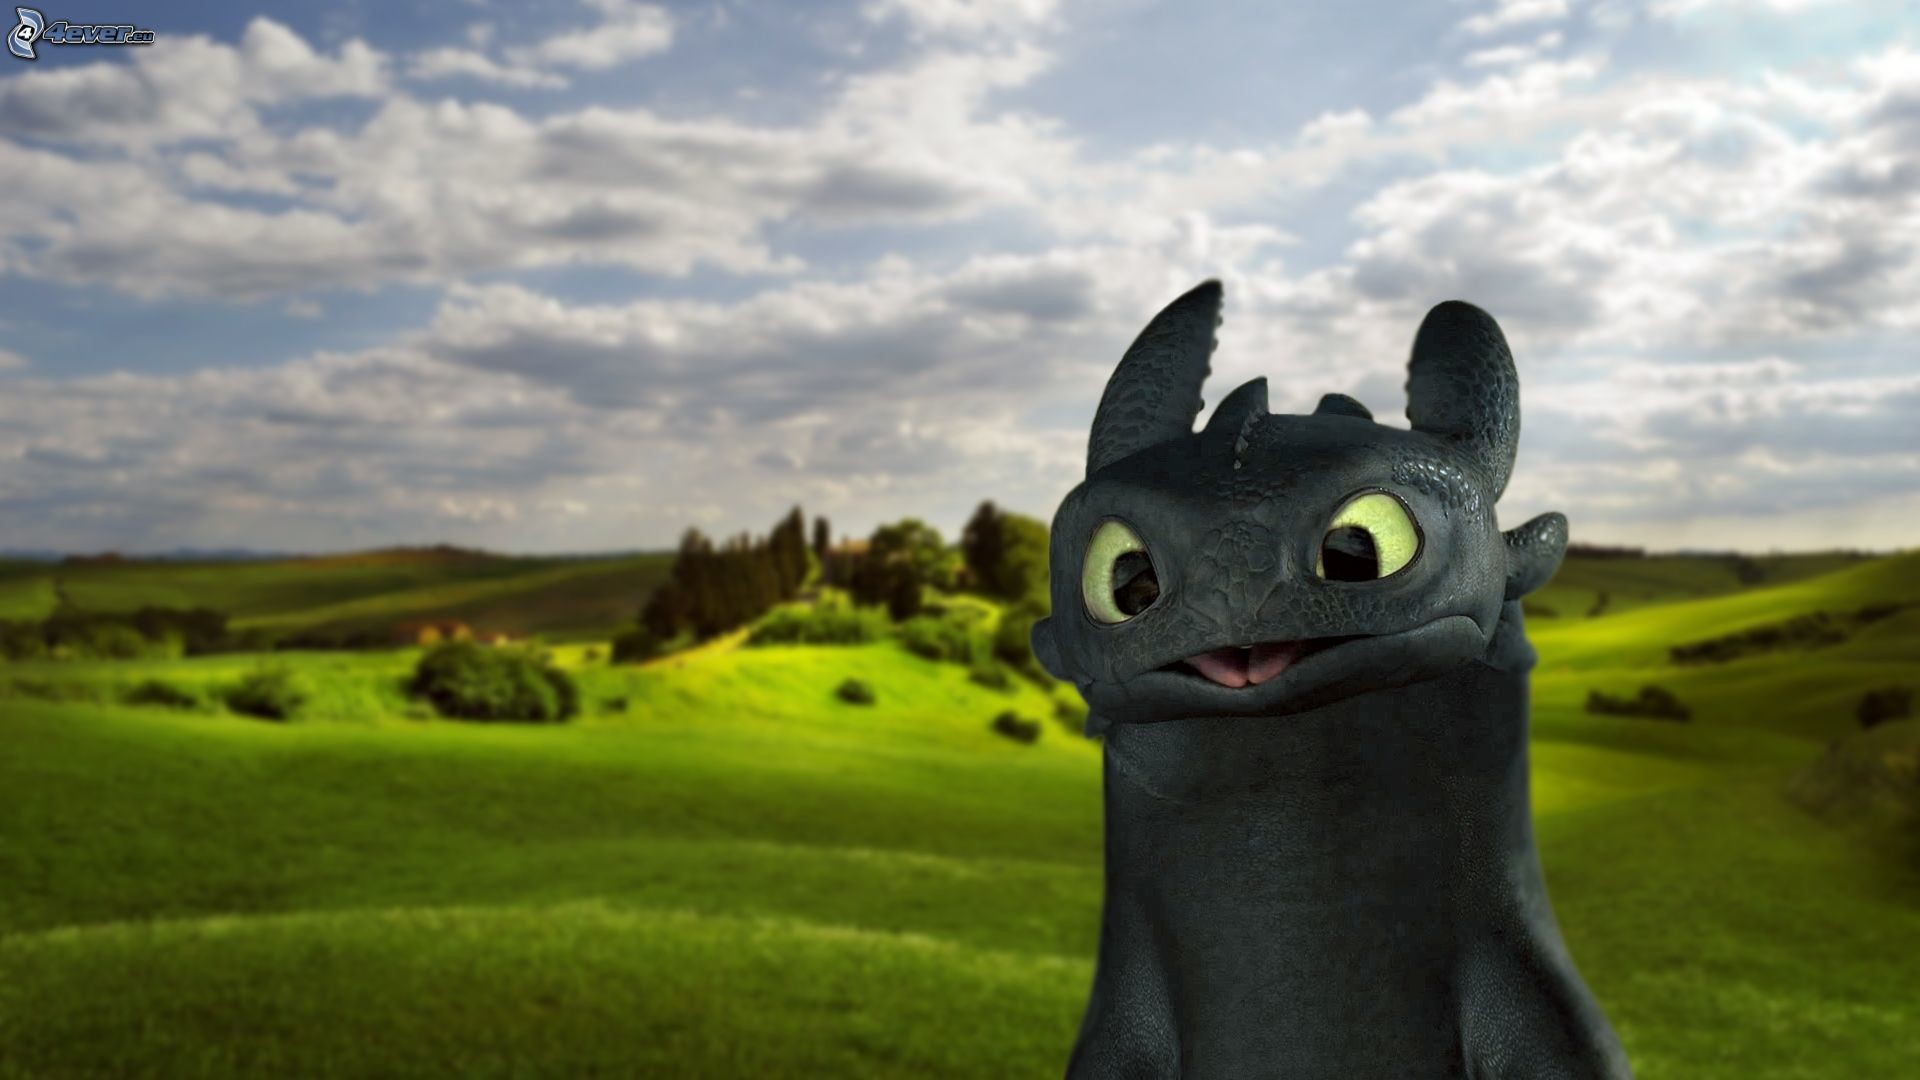 Toothless Hd Night Fury Wallpaper